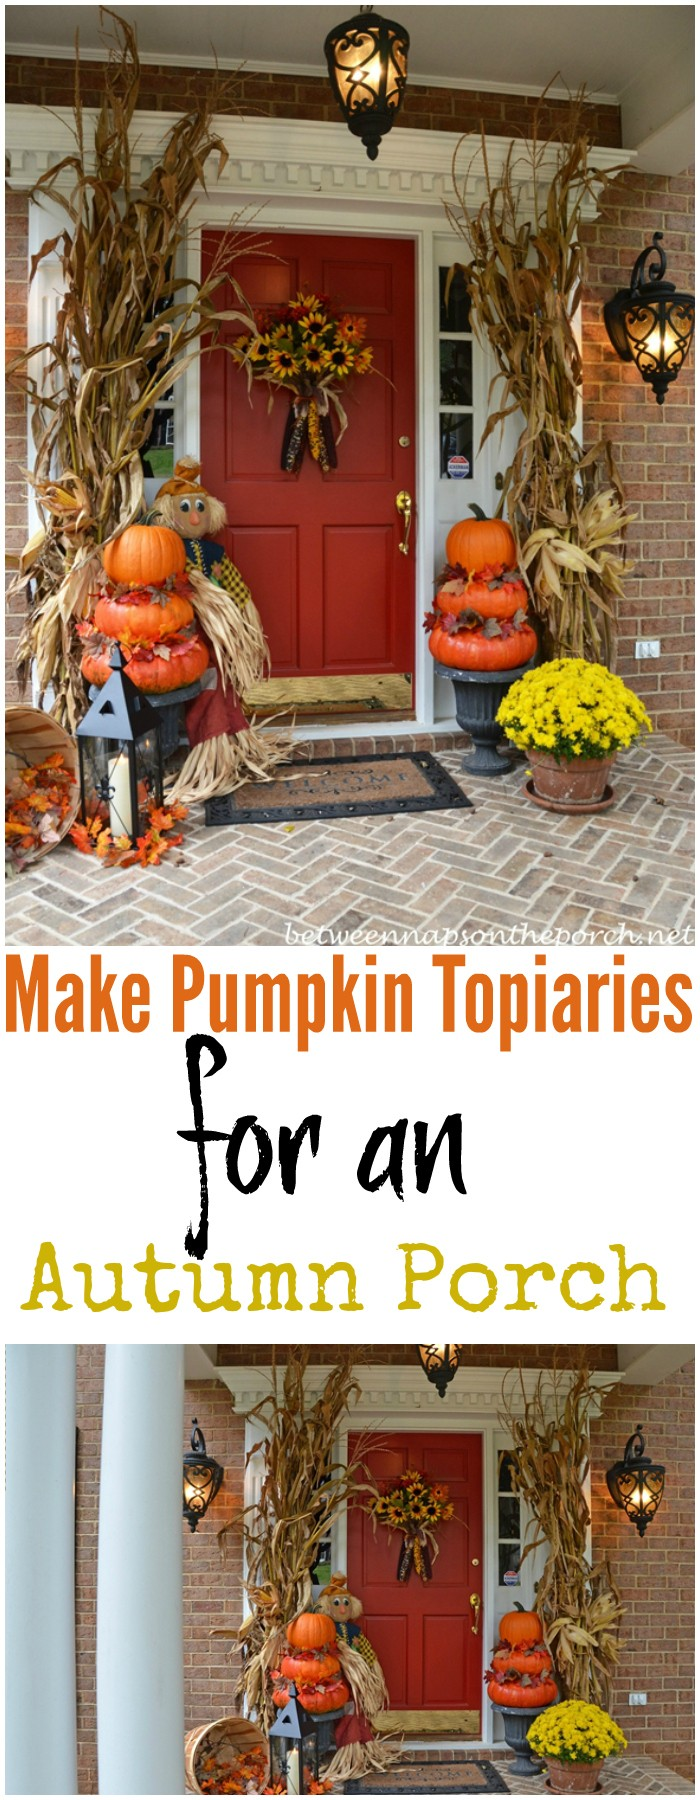 Make Pumpkin Topiaries for an Autumn Porch 20 Amazing DIY Fall Porch Decor Ideas